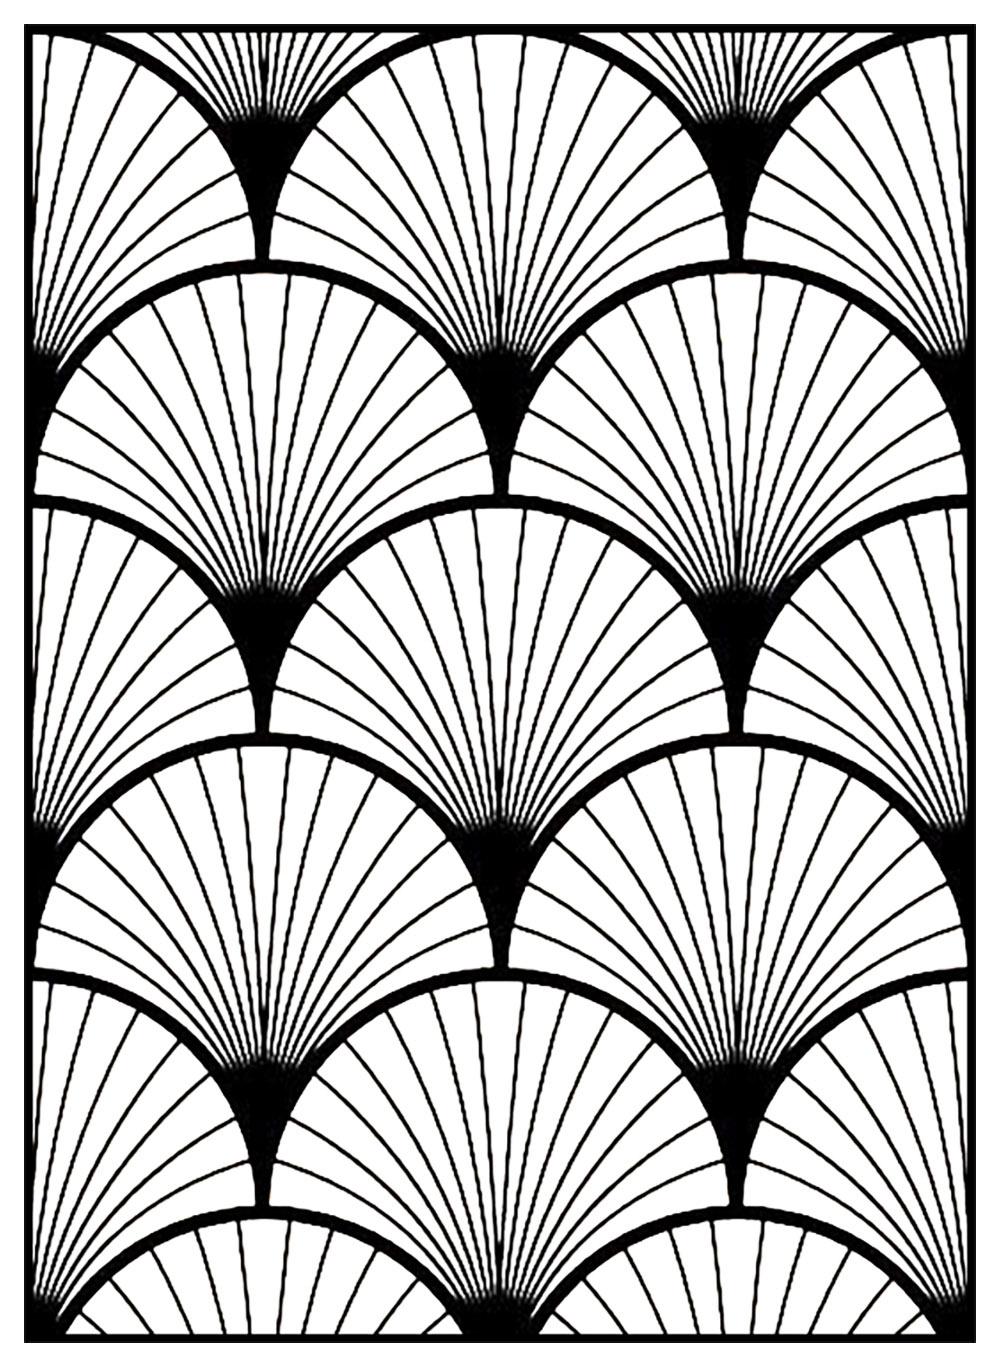 - Geometric Patterns Art Deco 3 - Art Deco Adult Coloring Pages